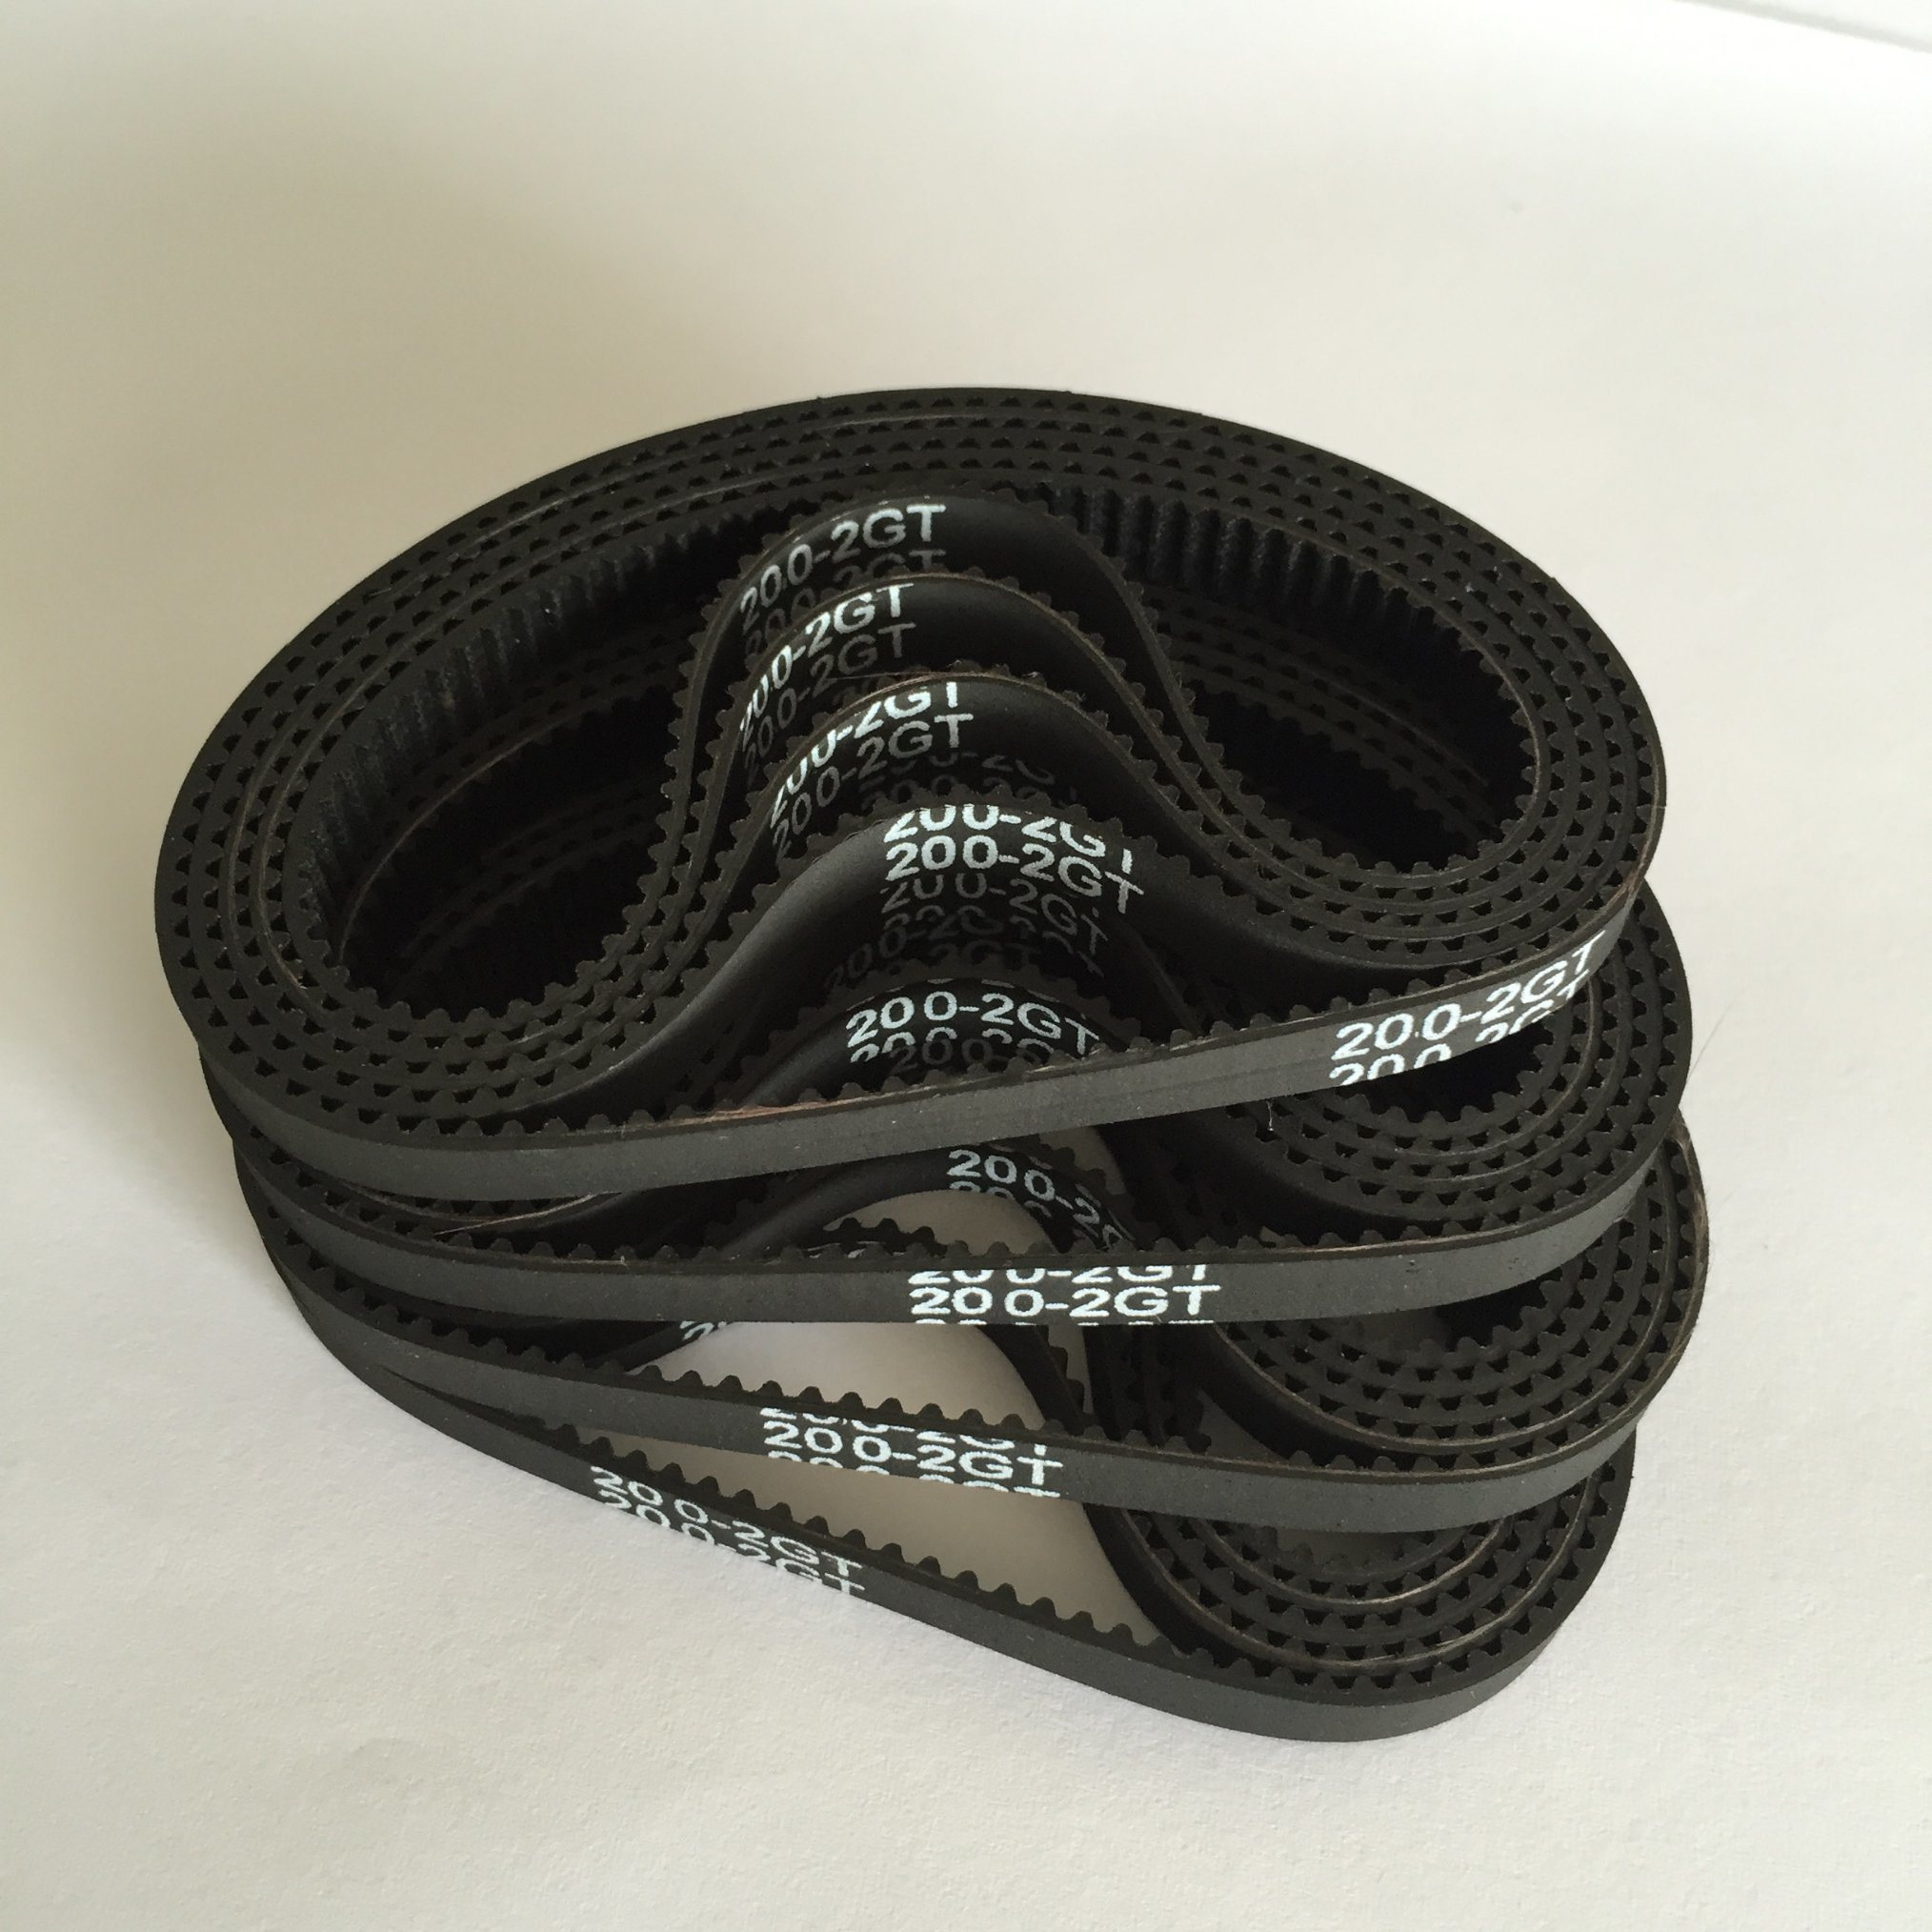 Rubber Timing Belt for Industrial